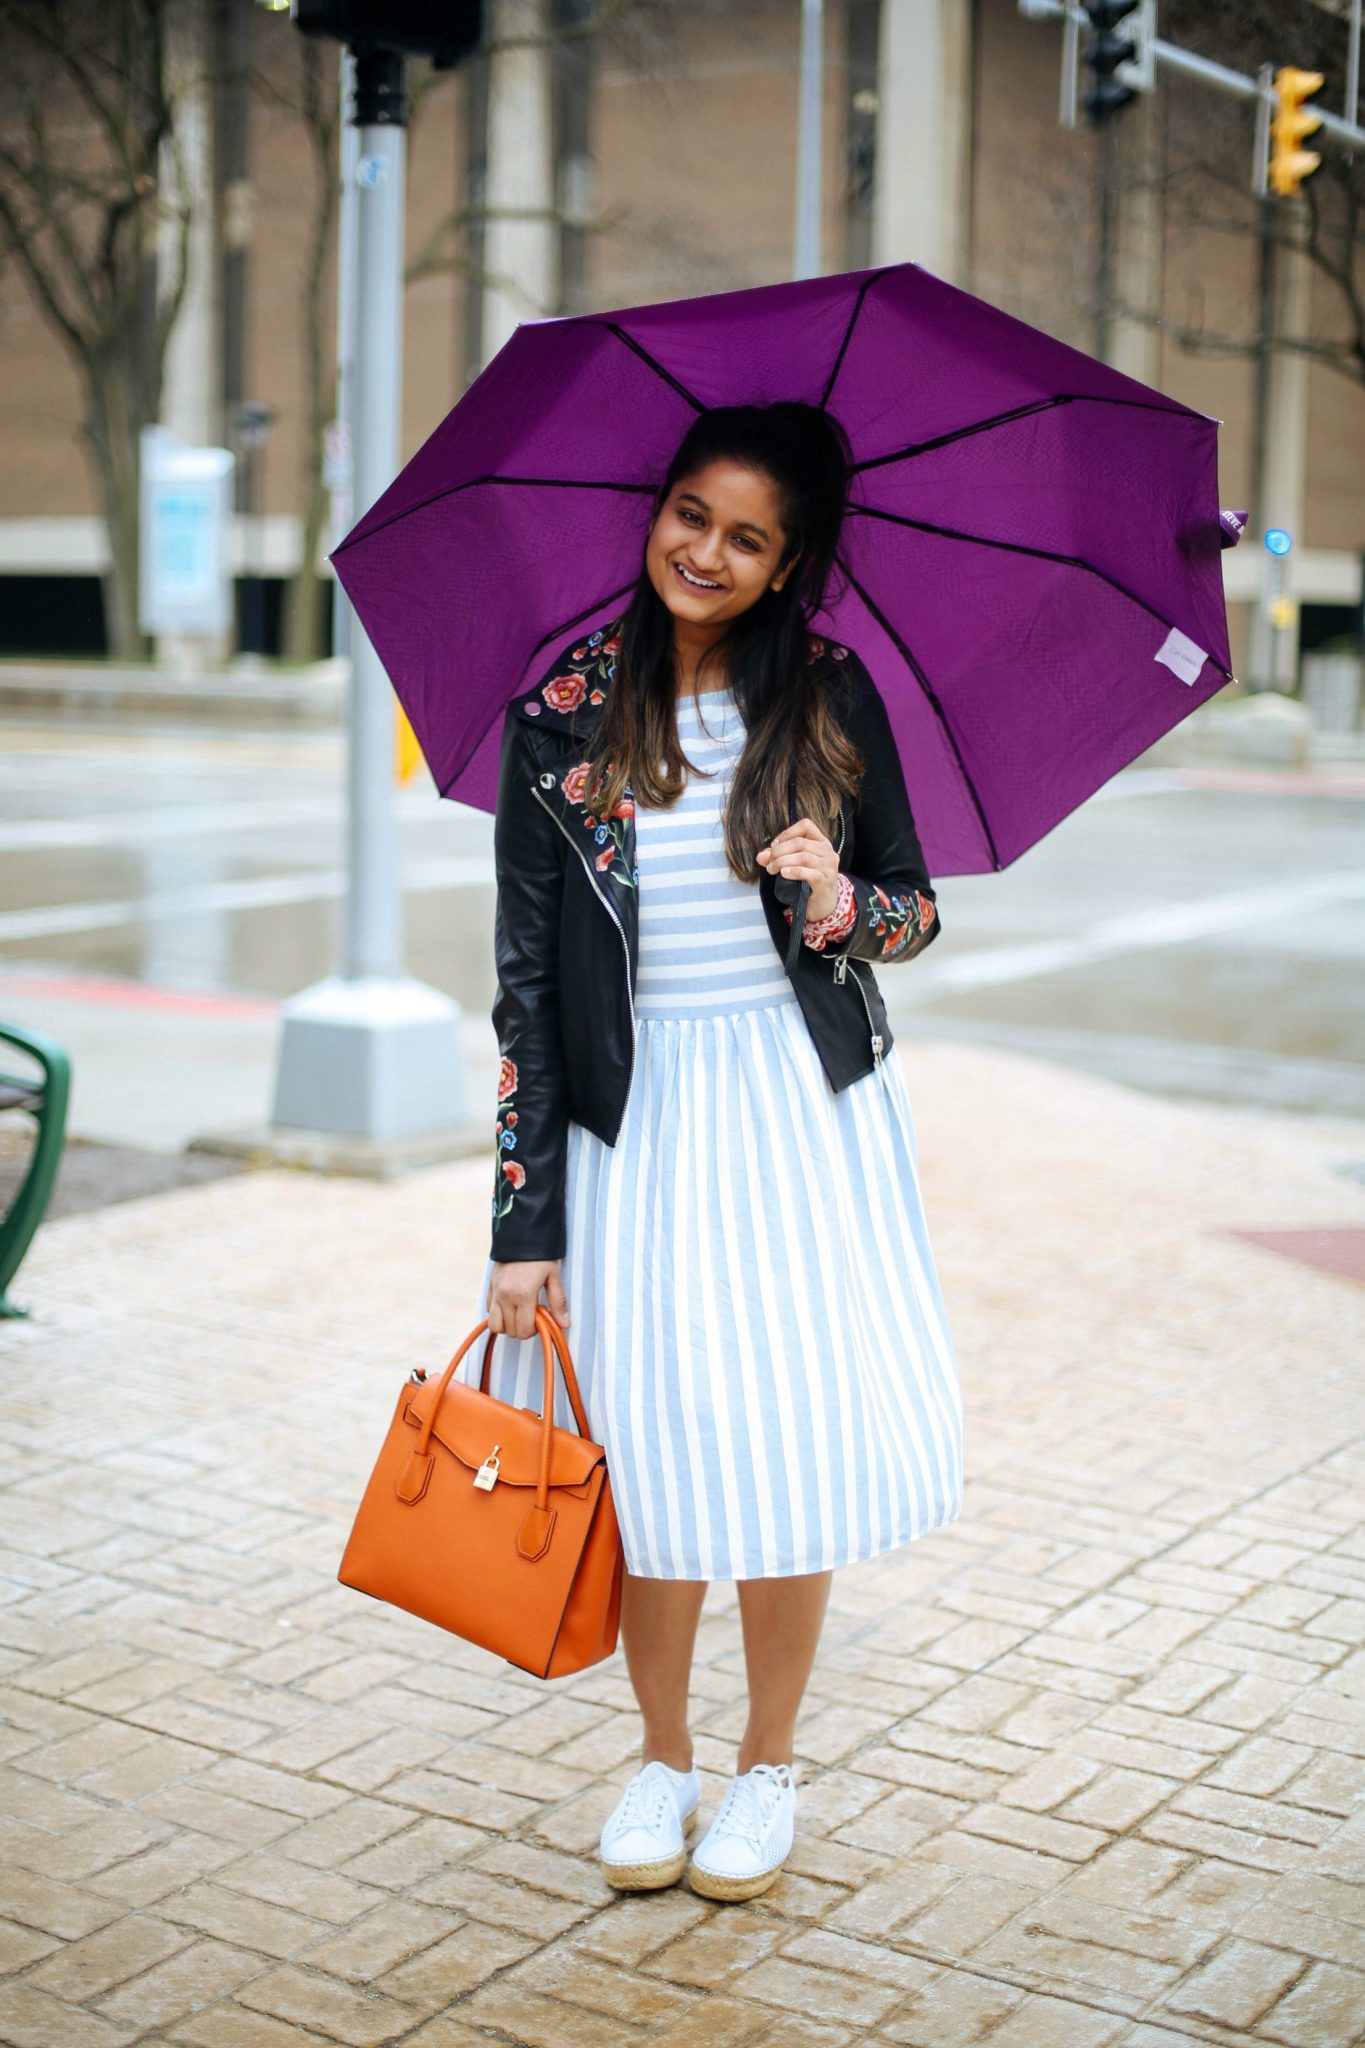 Asos-VERO-MODA-STRIPED-SKATER-DRESS-2 - The Best Spring Summer Dresses featured by Ohio modest fashion blogger, Dreaming Loud